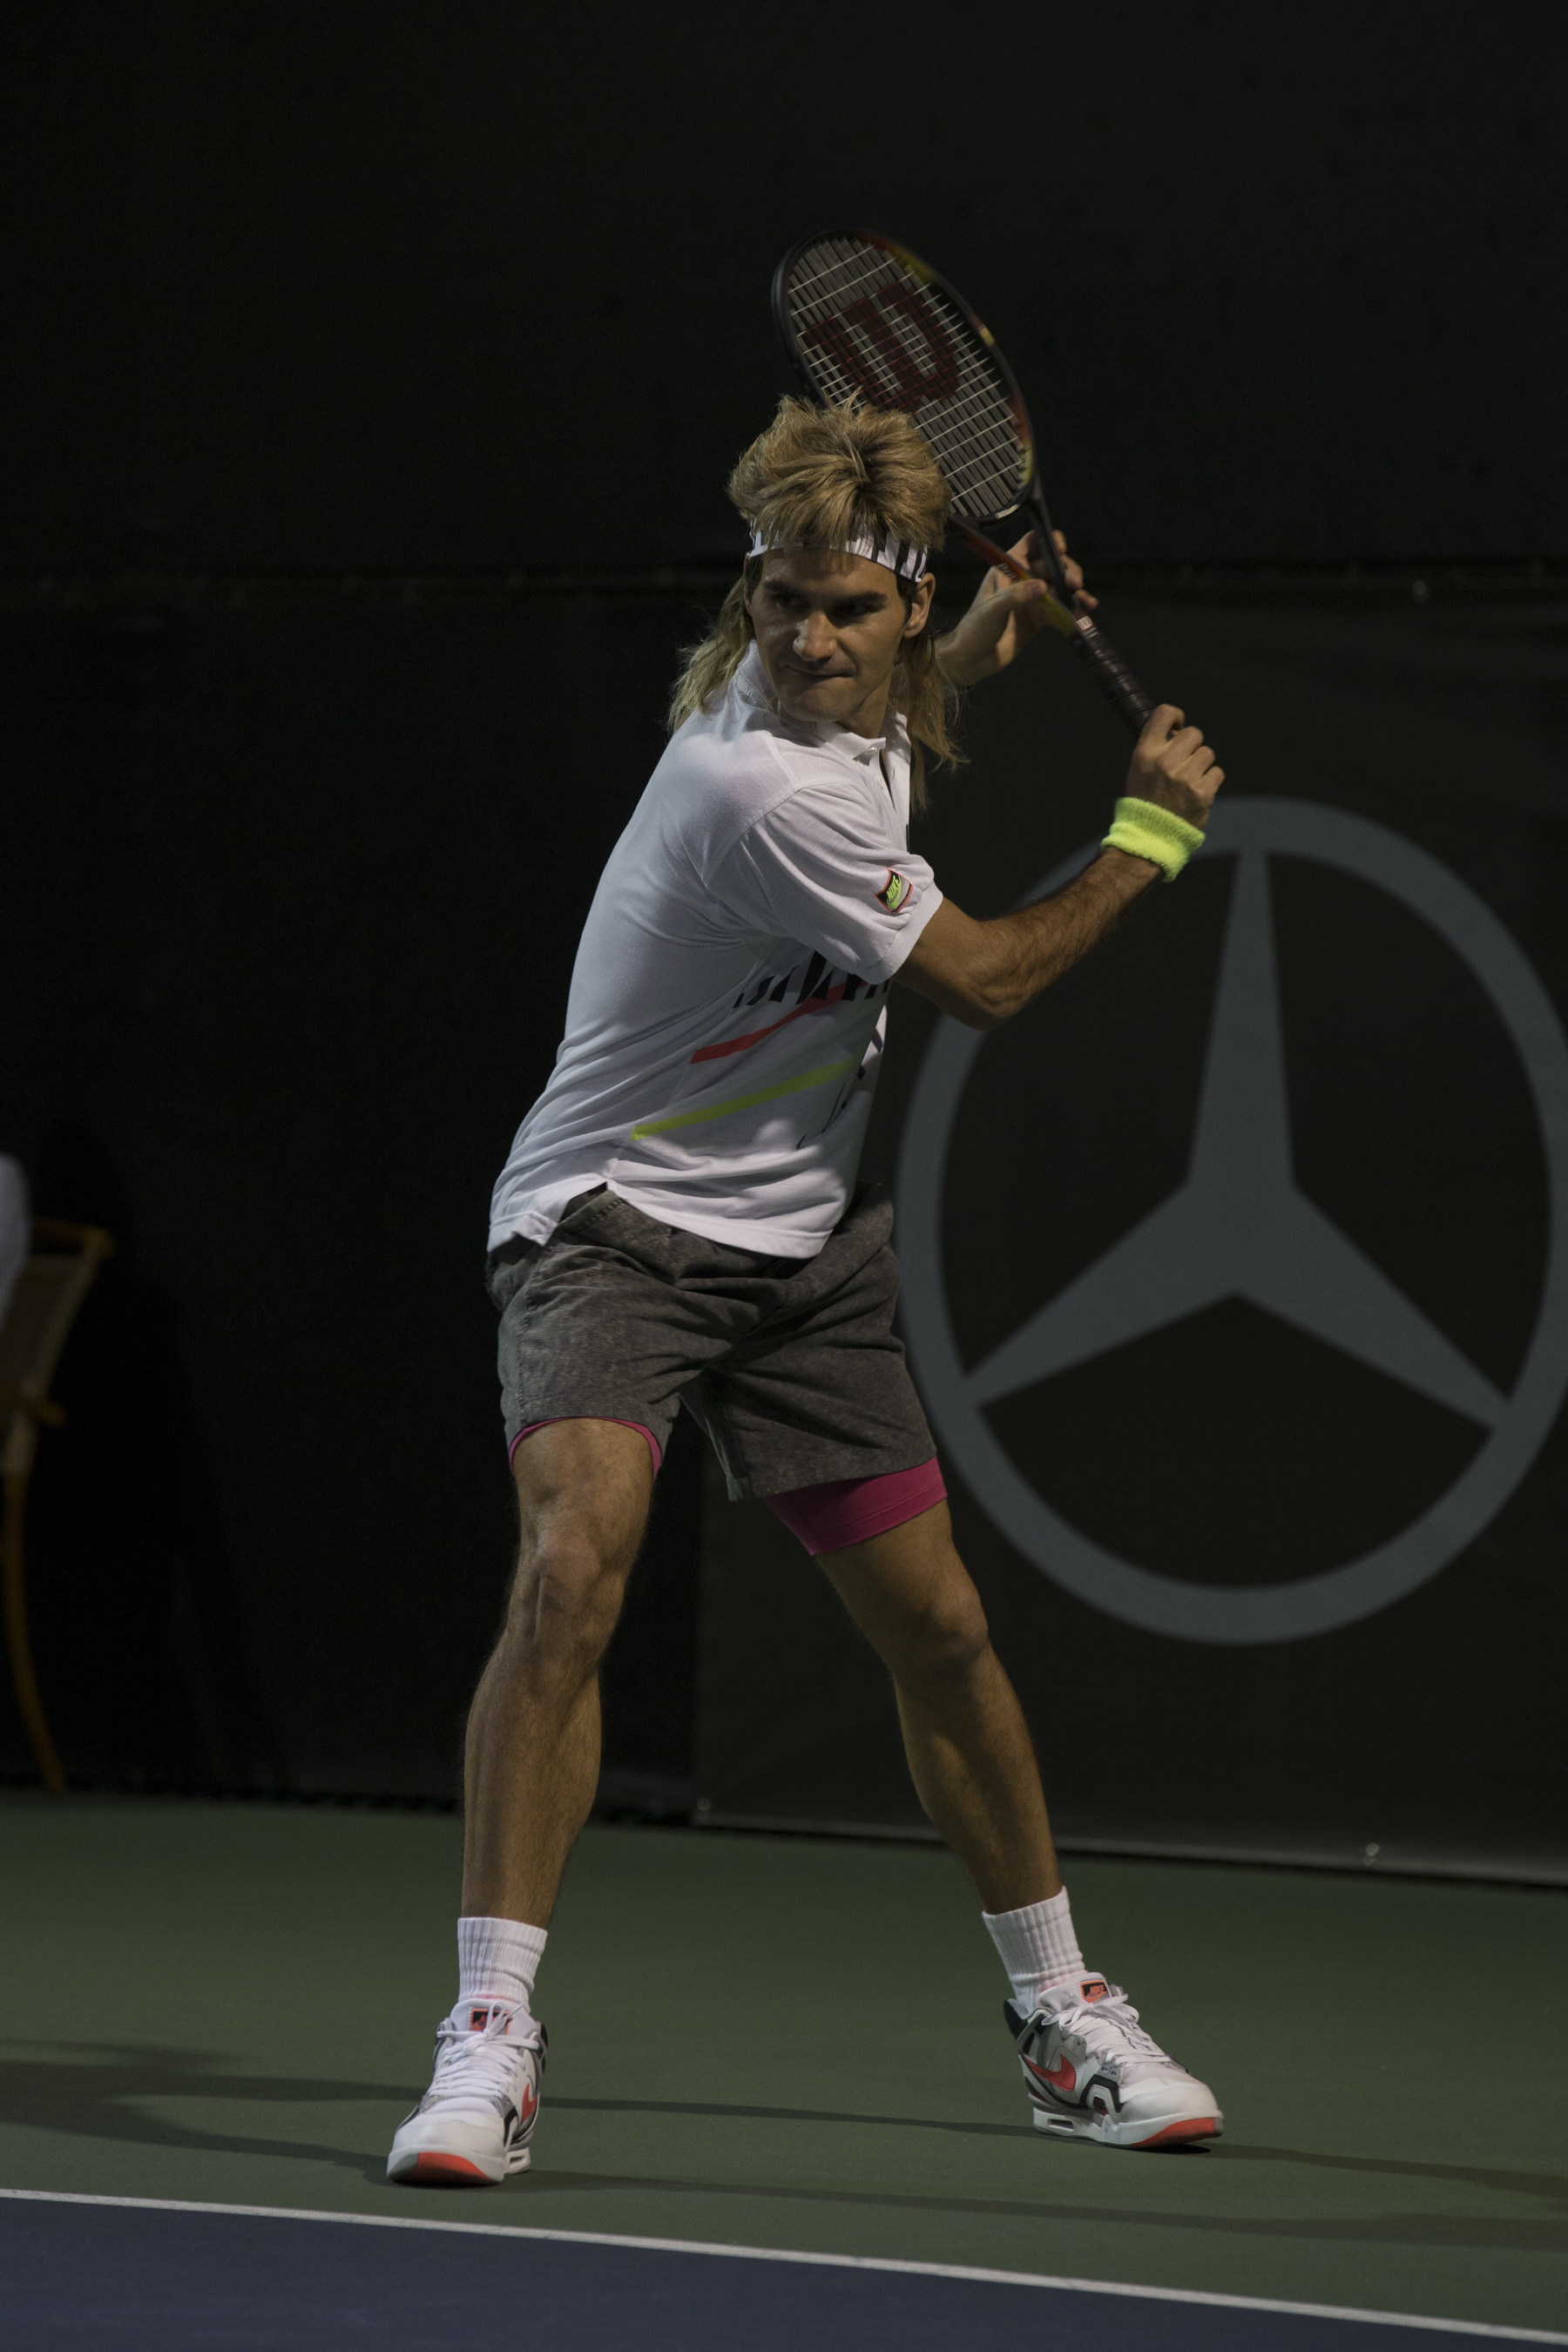 Mercedes-Benz Casts Roger Federer in the Role he was Björn to Play